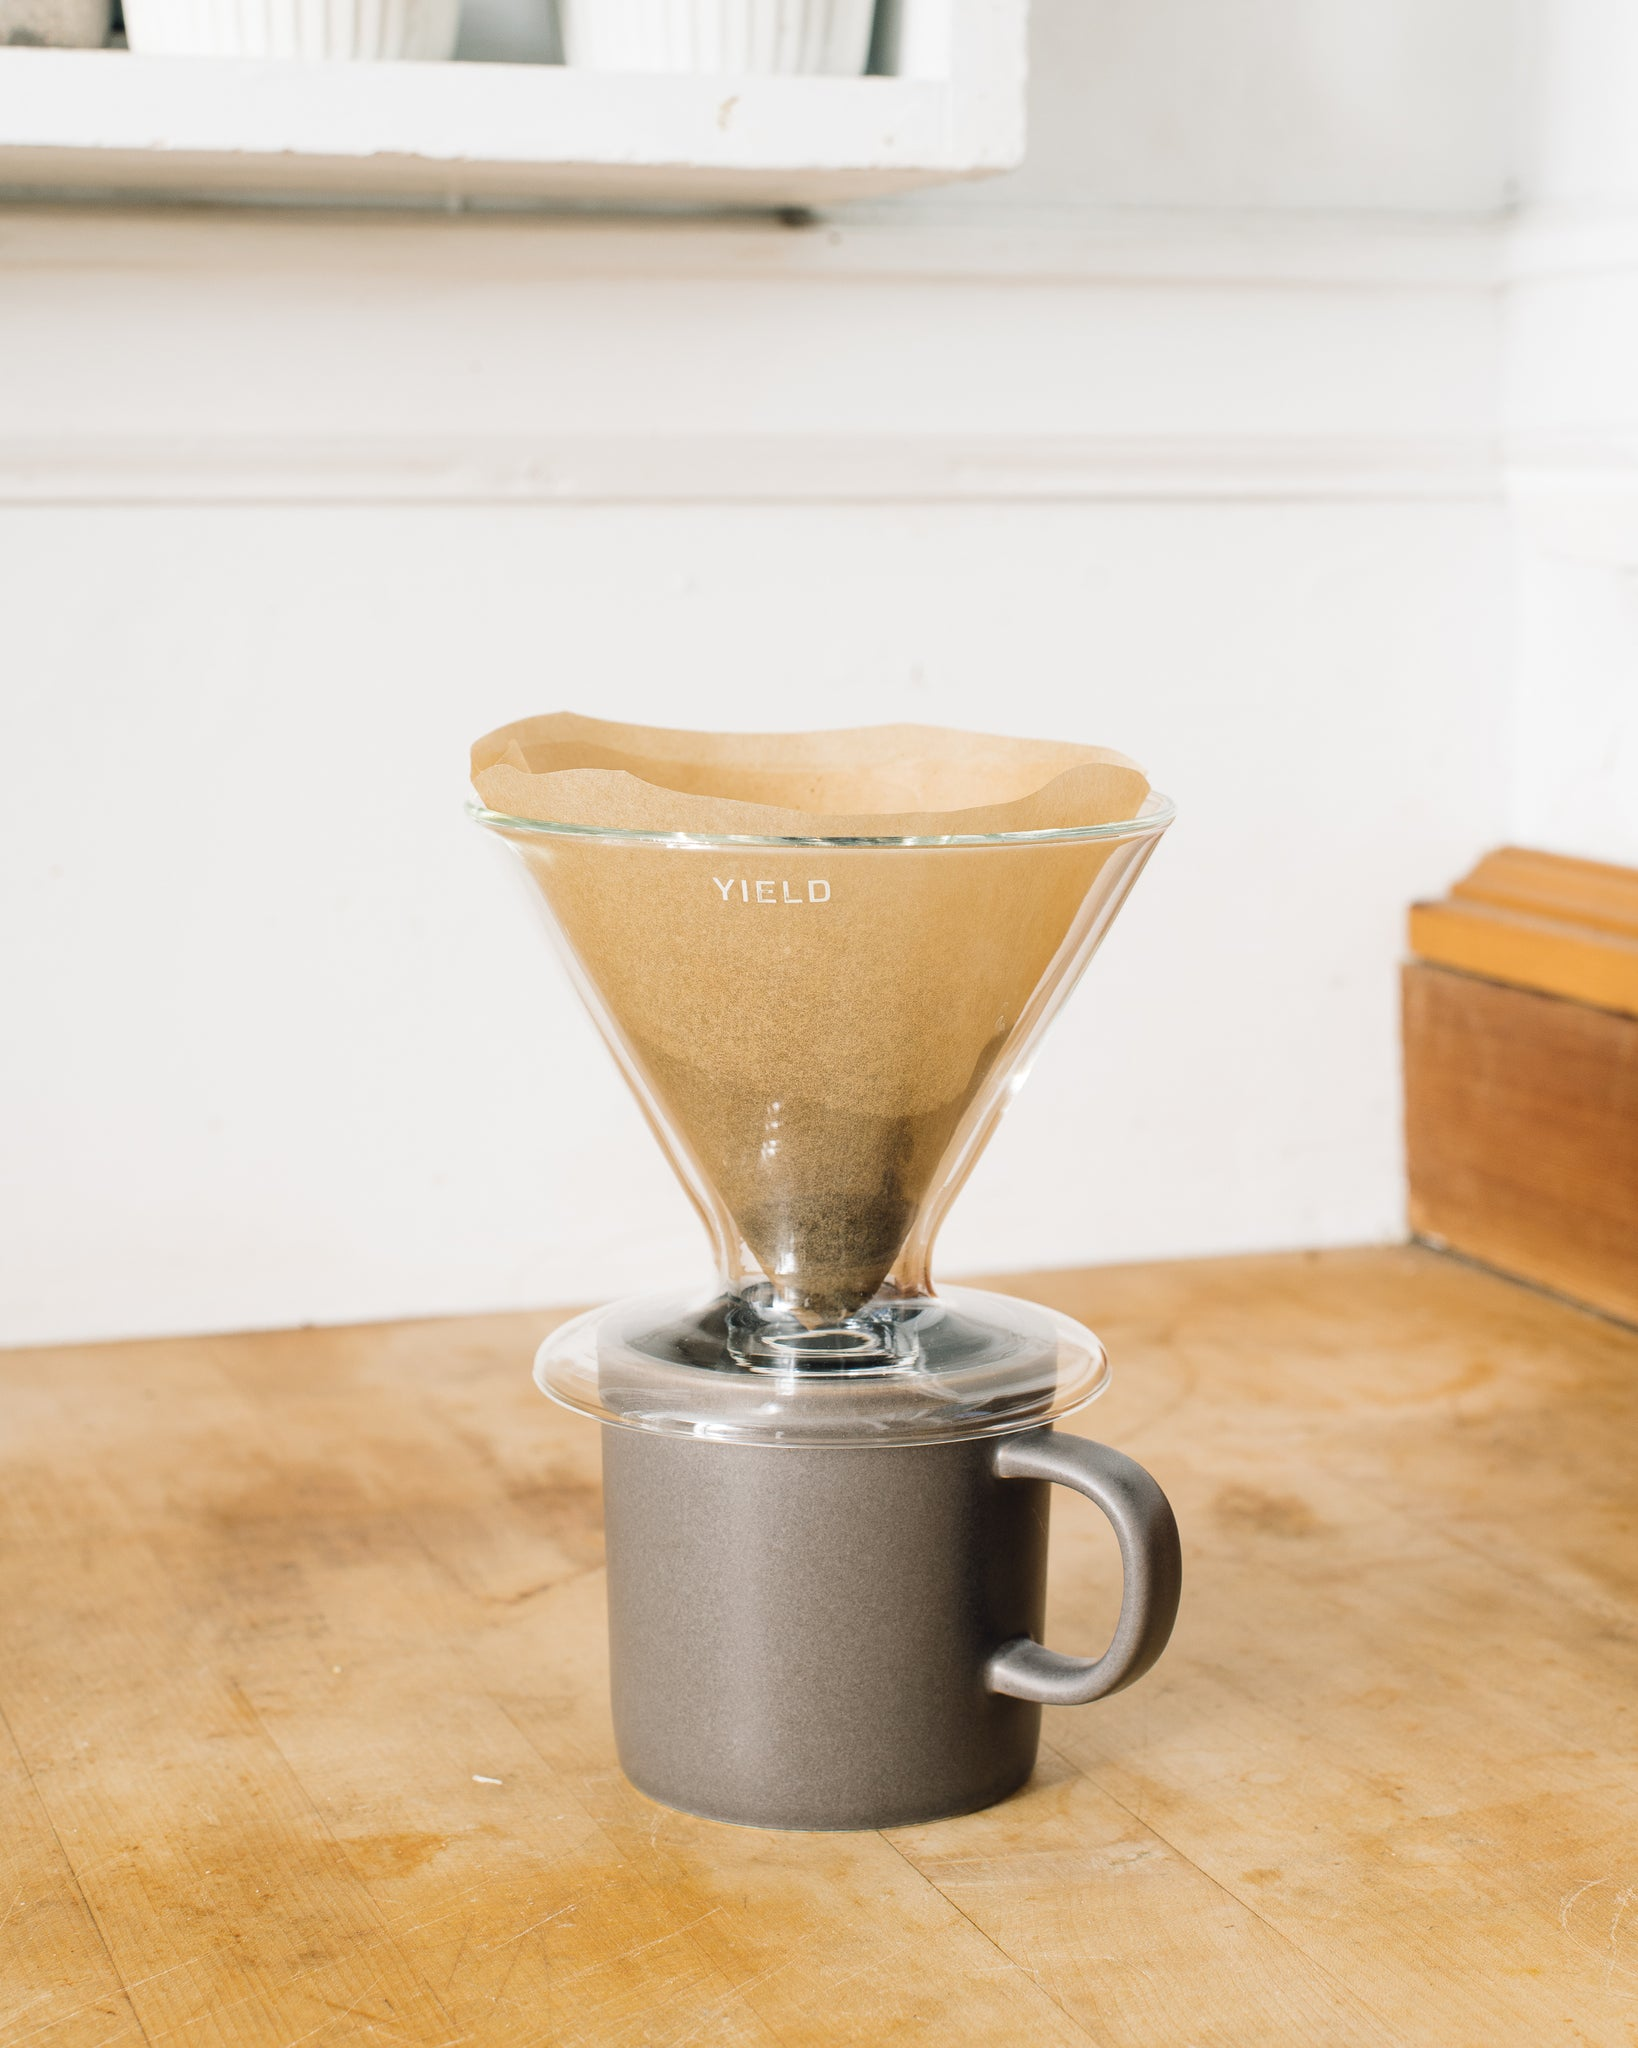 Yield Double-Wall Coffee Pour Over